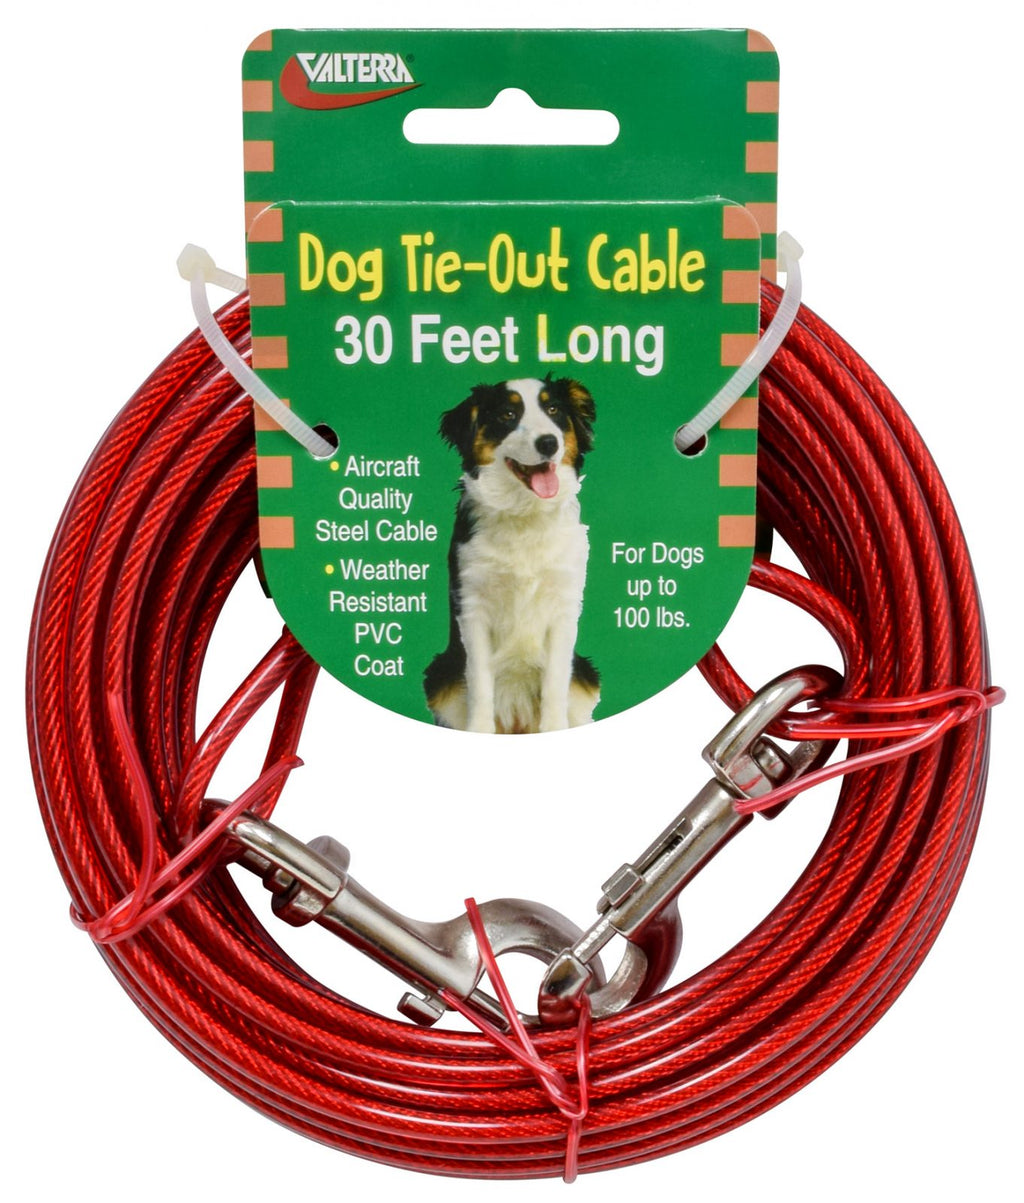 Dog Tie-Out Cable - 30' - A10-2012VP